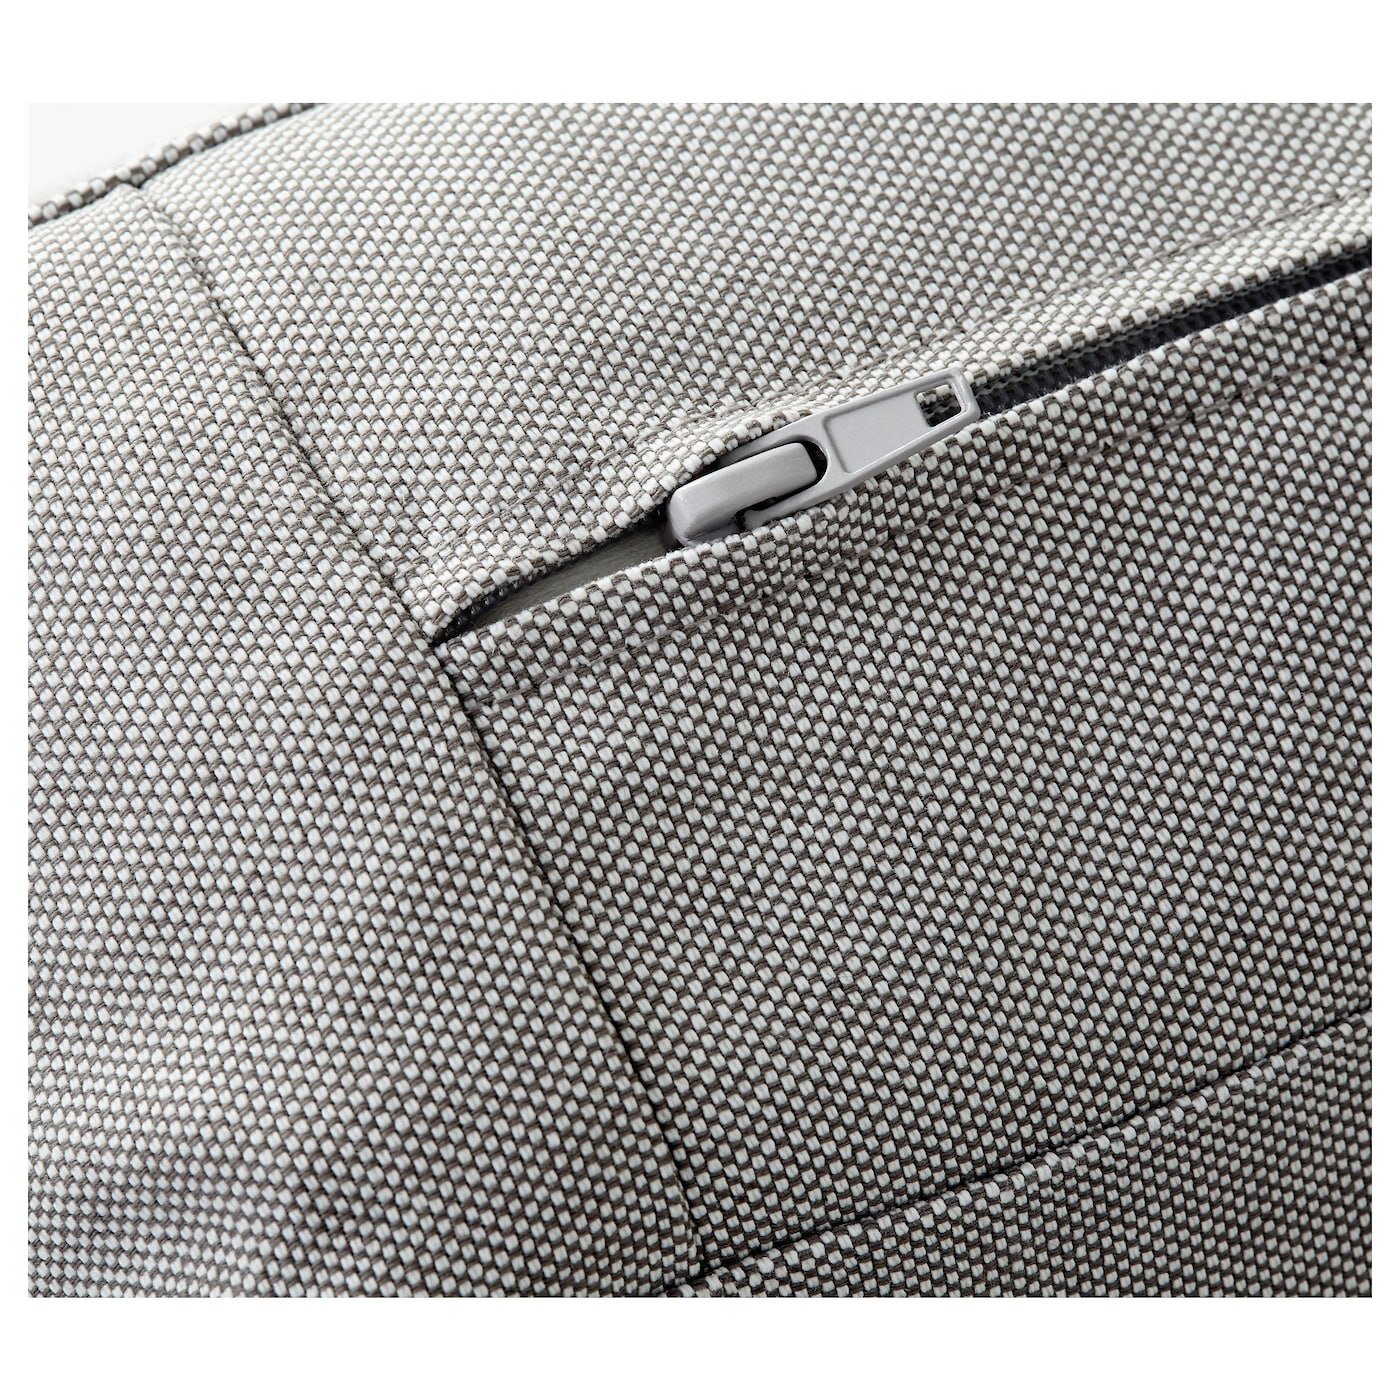 IKEA KIVIK 3 Seat Sofa The Cover Is Easy To Keep Clean As It Is Part 52